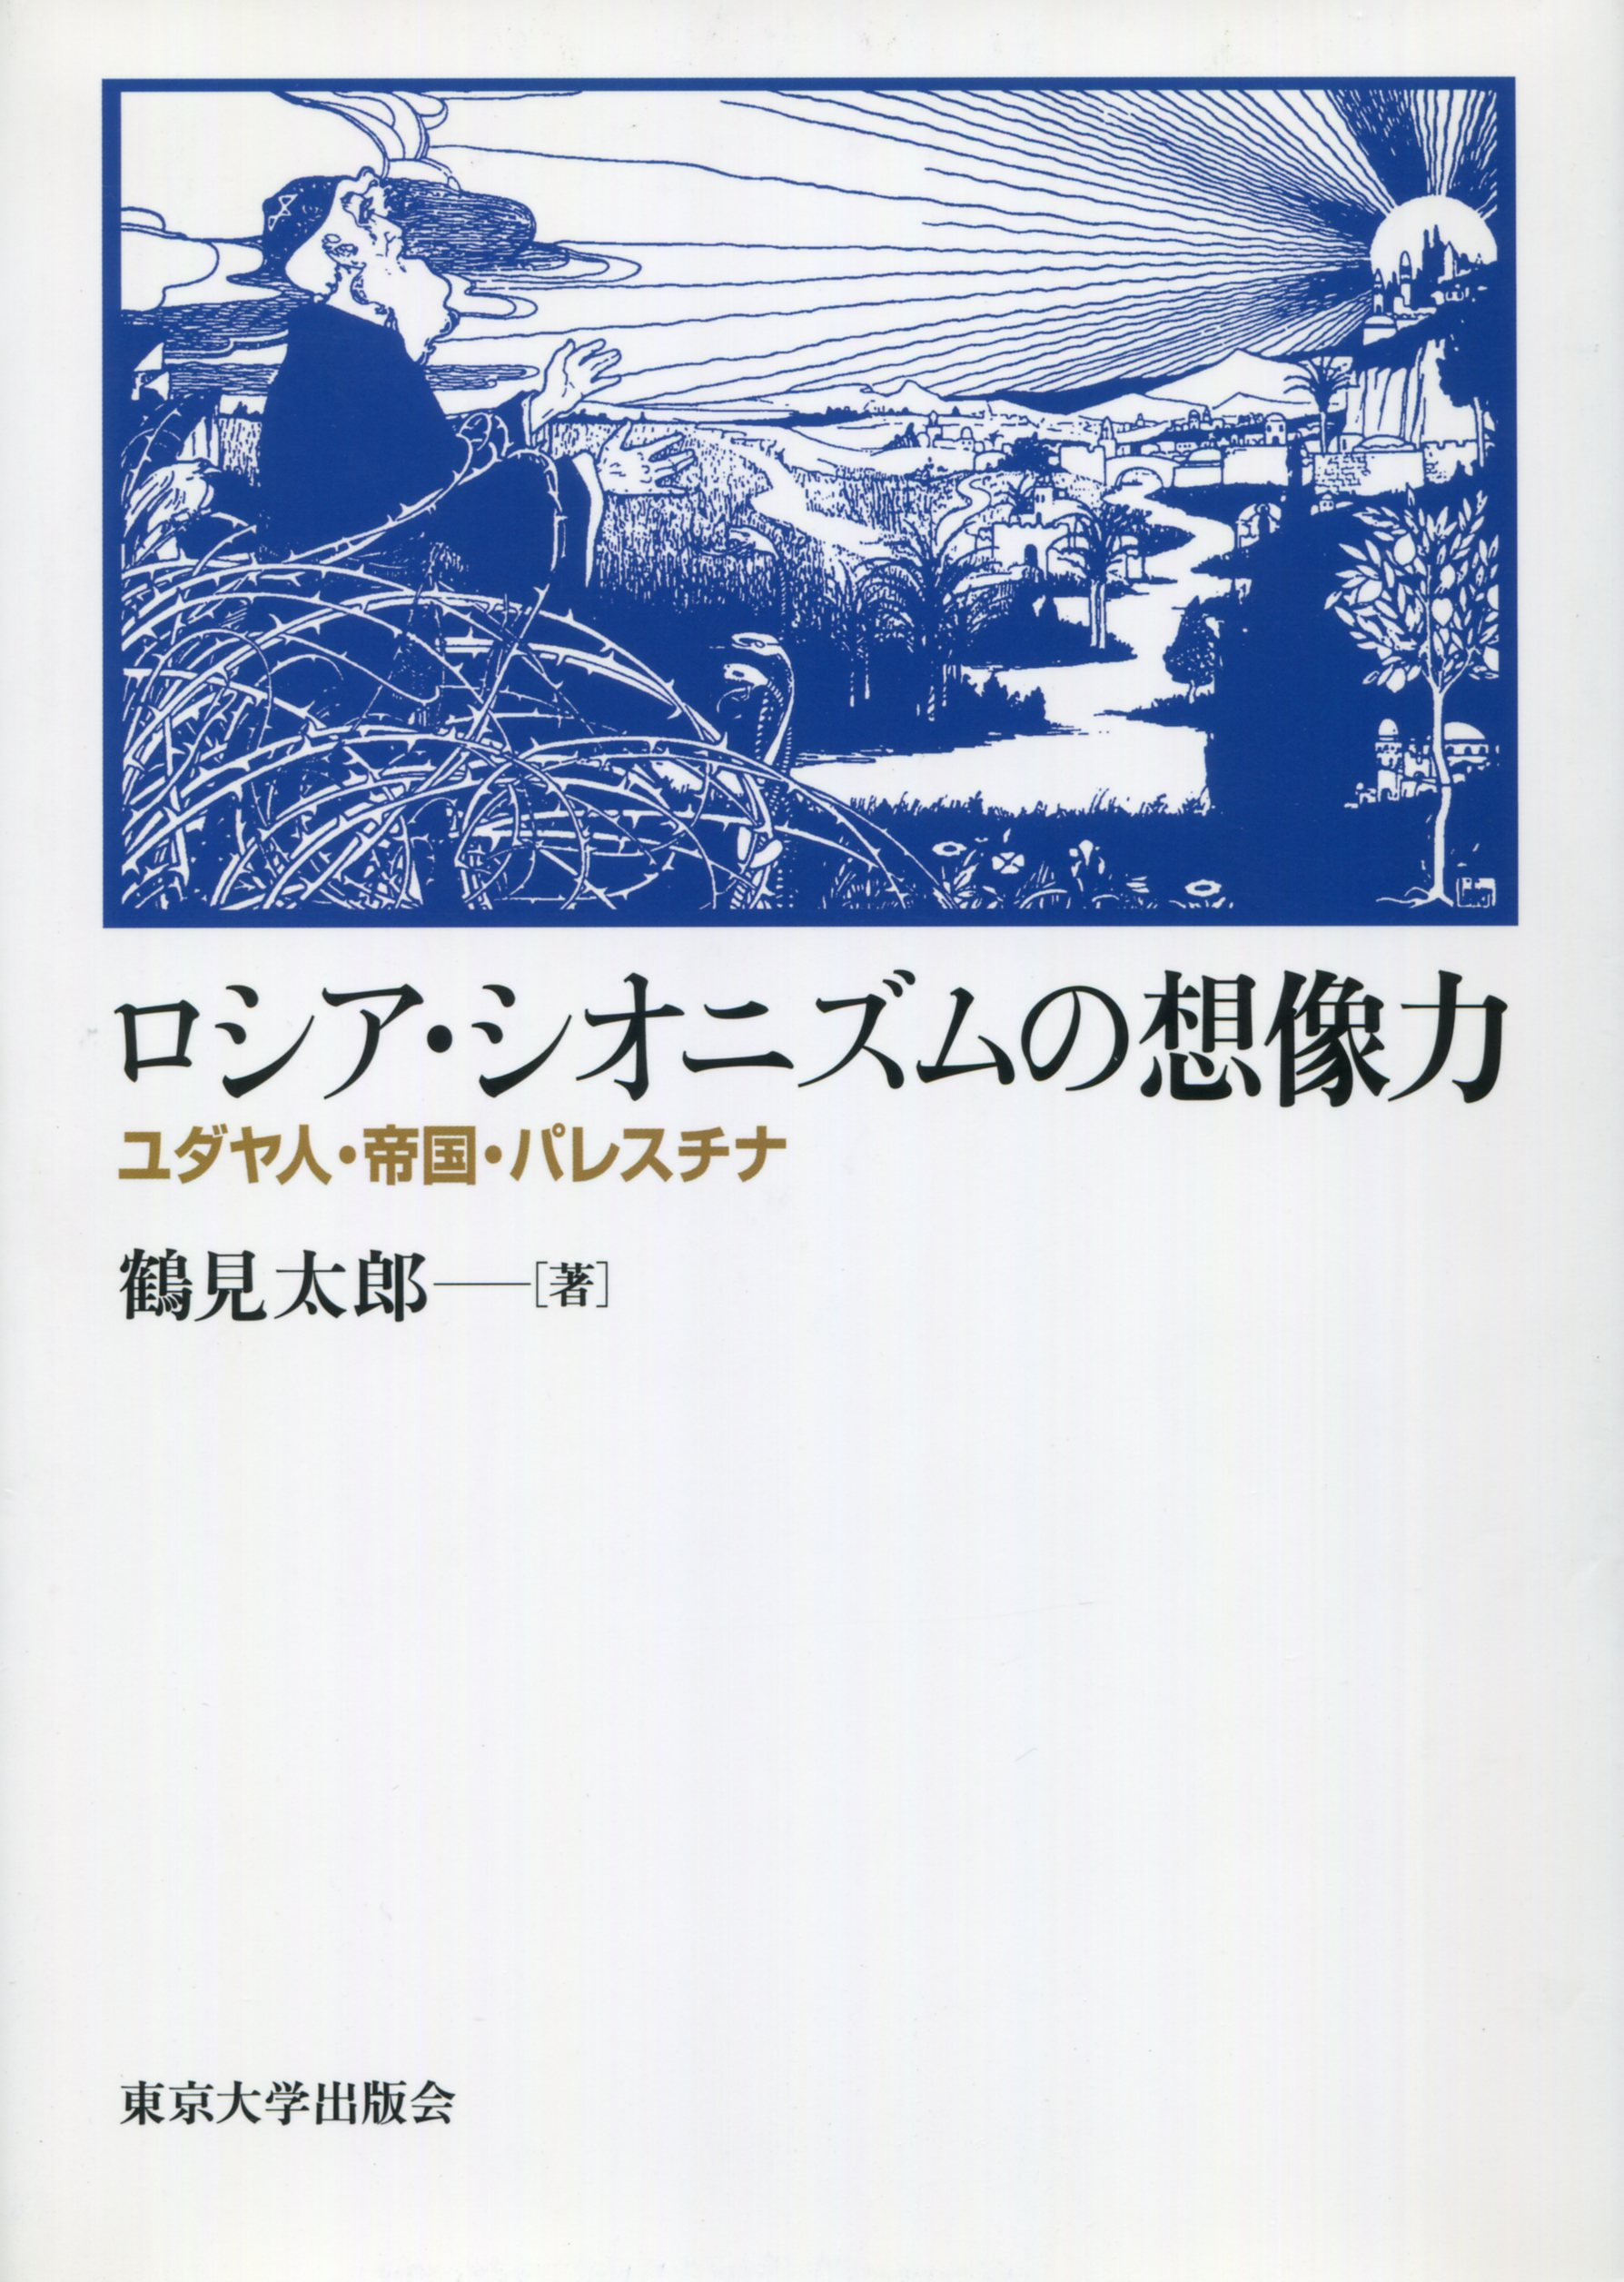 An illustration in blue at the top of the cover against a white background